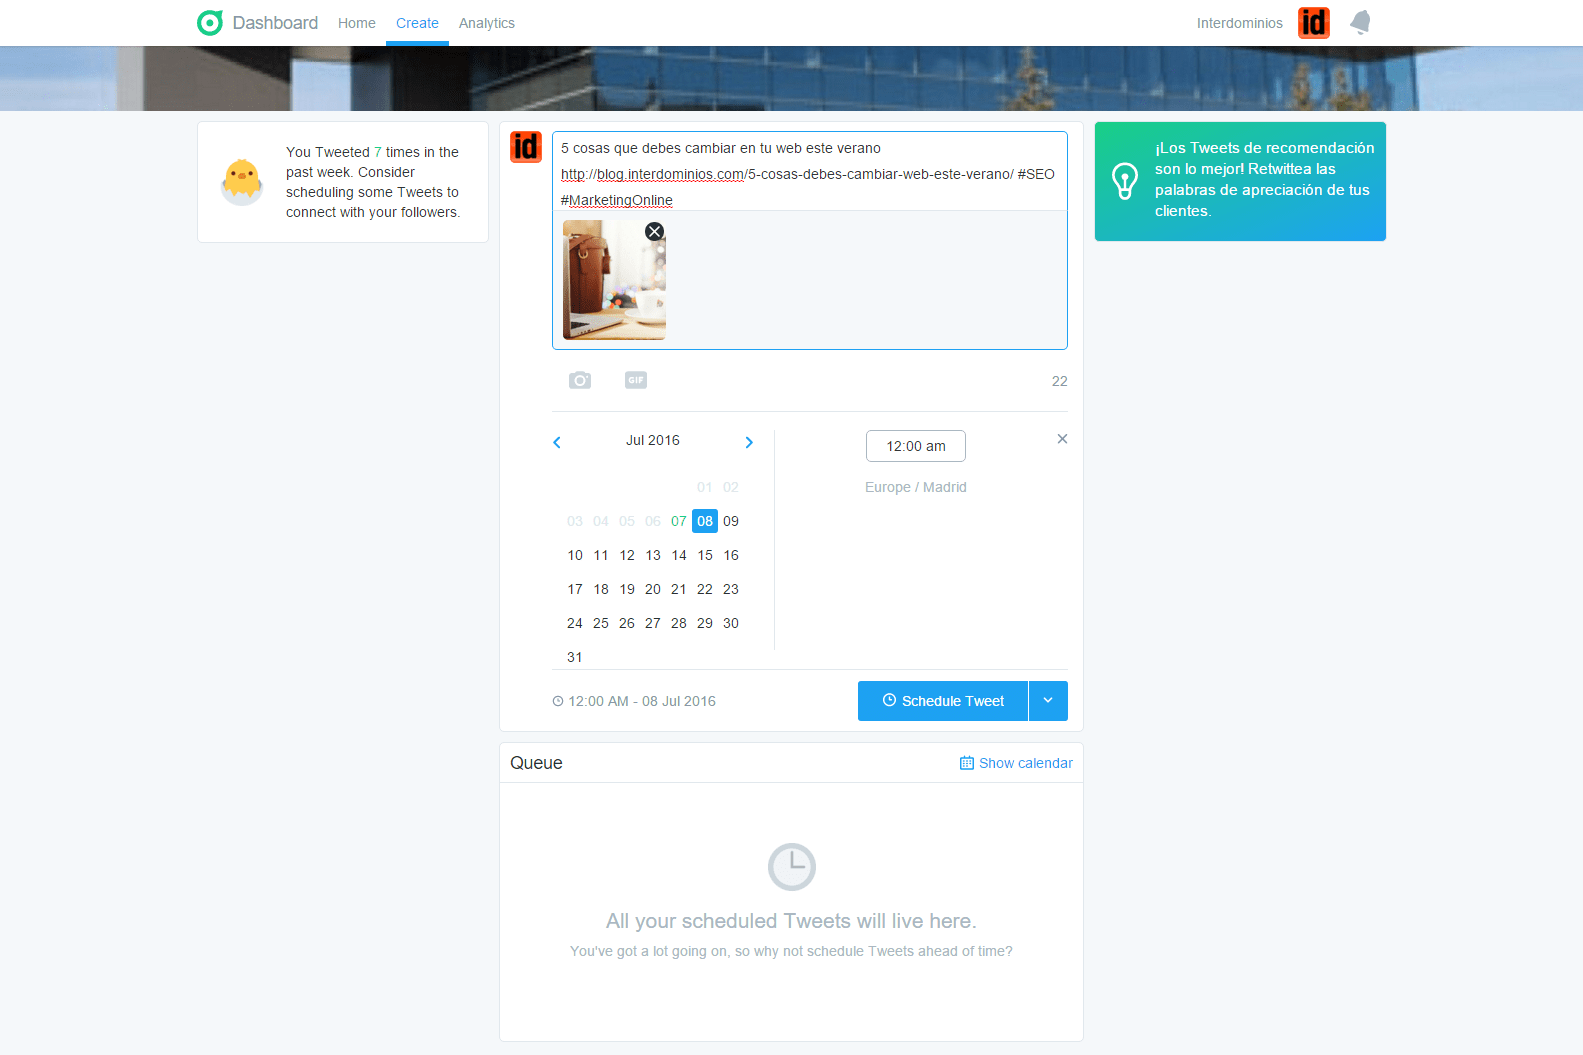 FireShot Capture 9 - Twitter Dashboard - https___dashboard.twitter.com_i_create